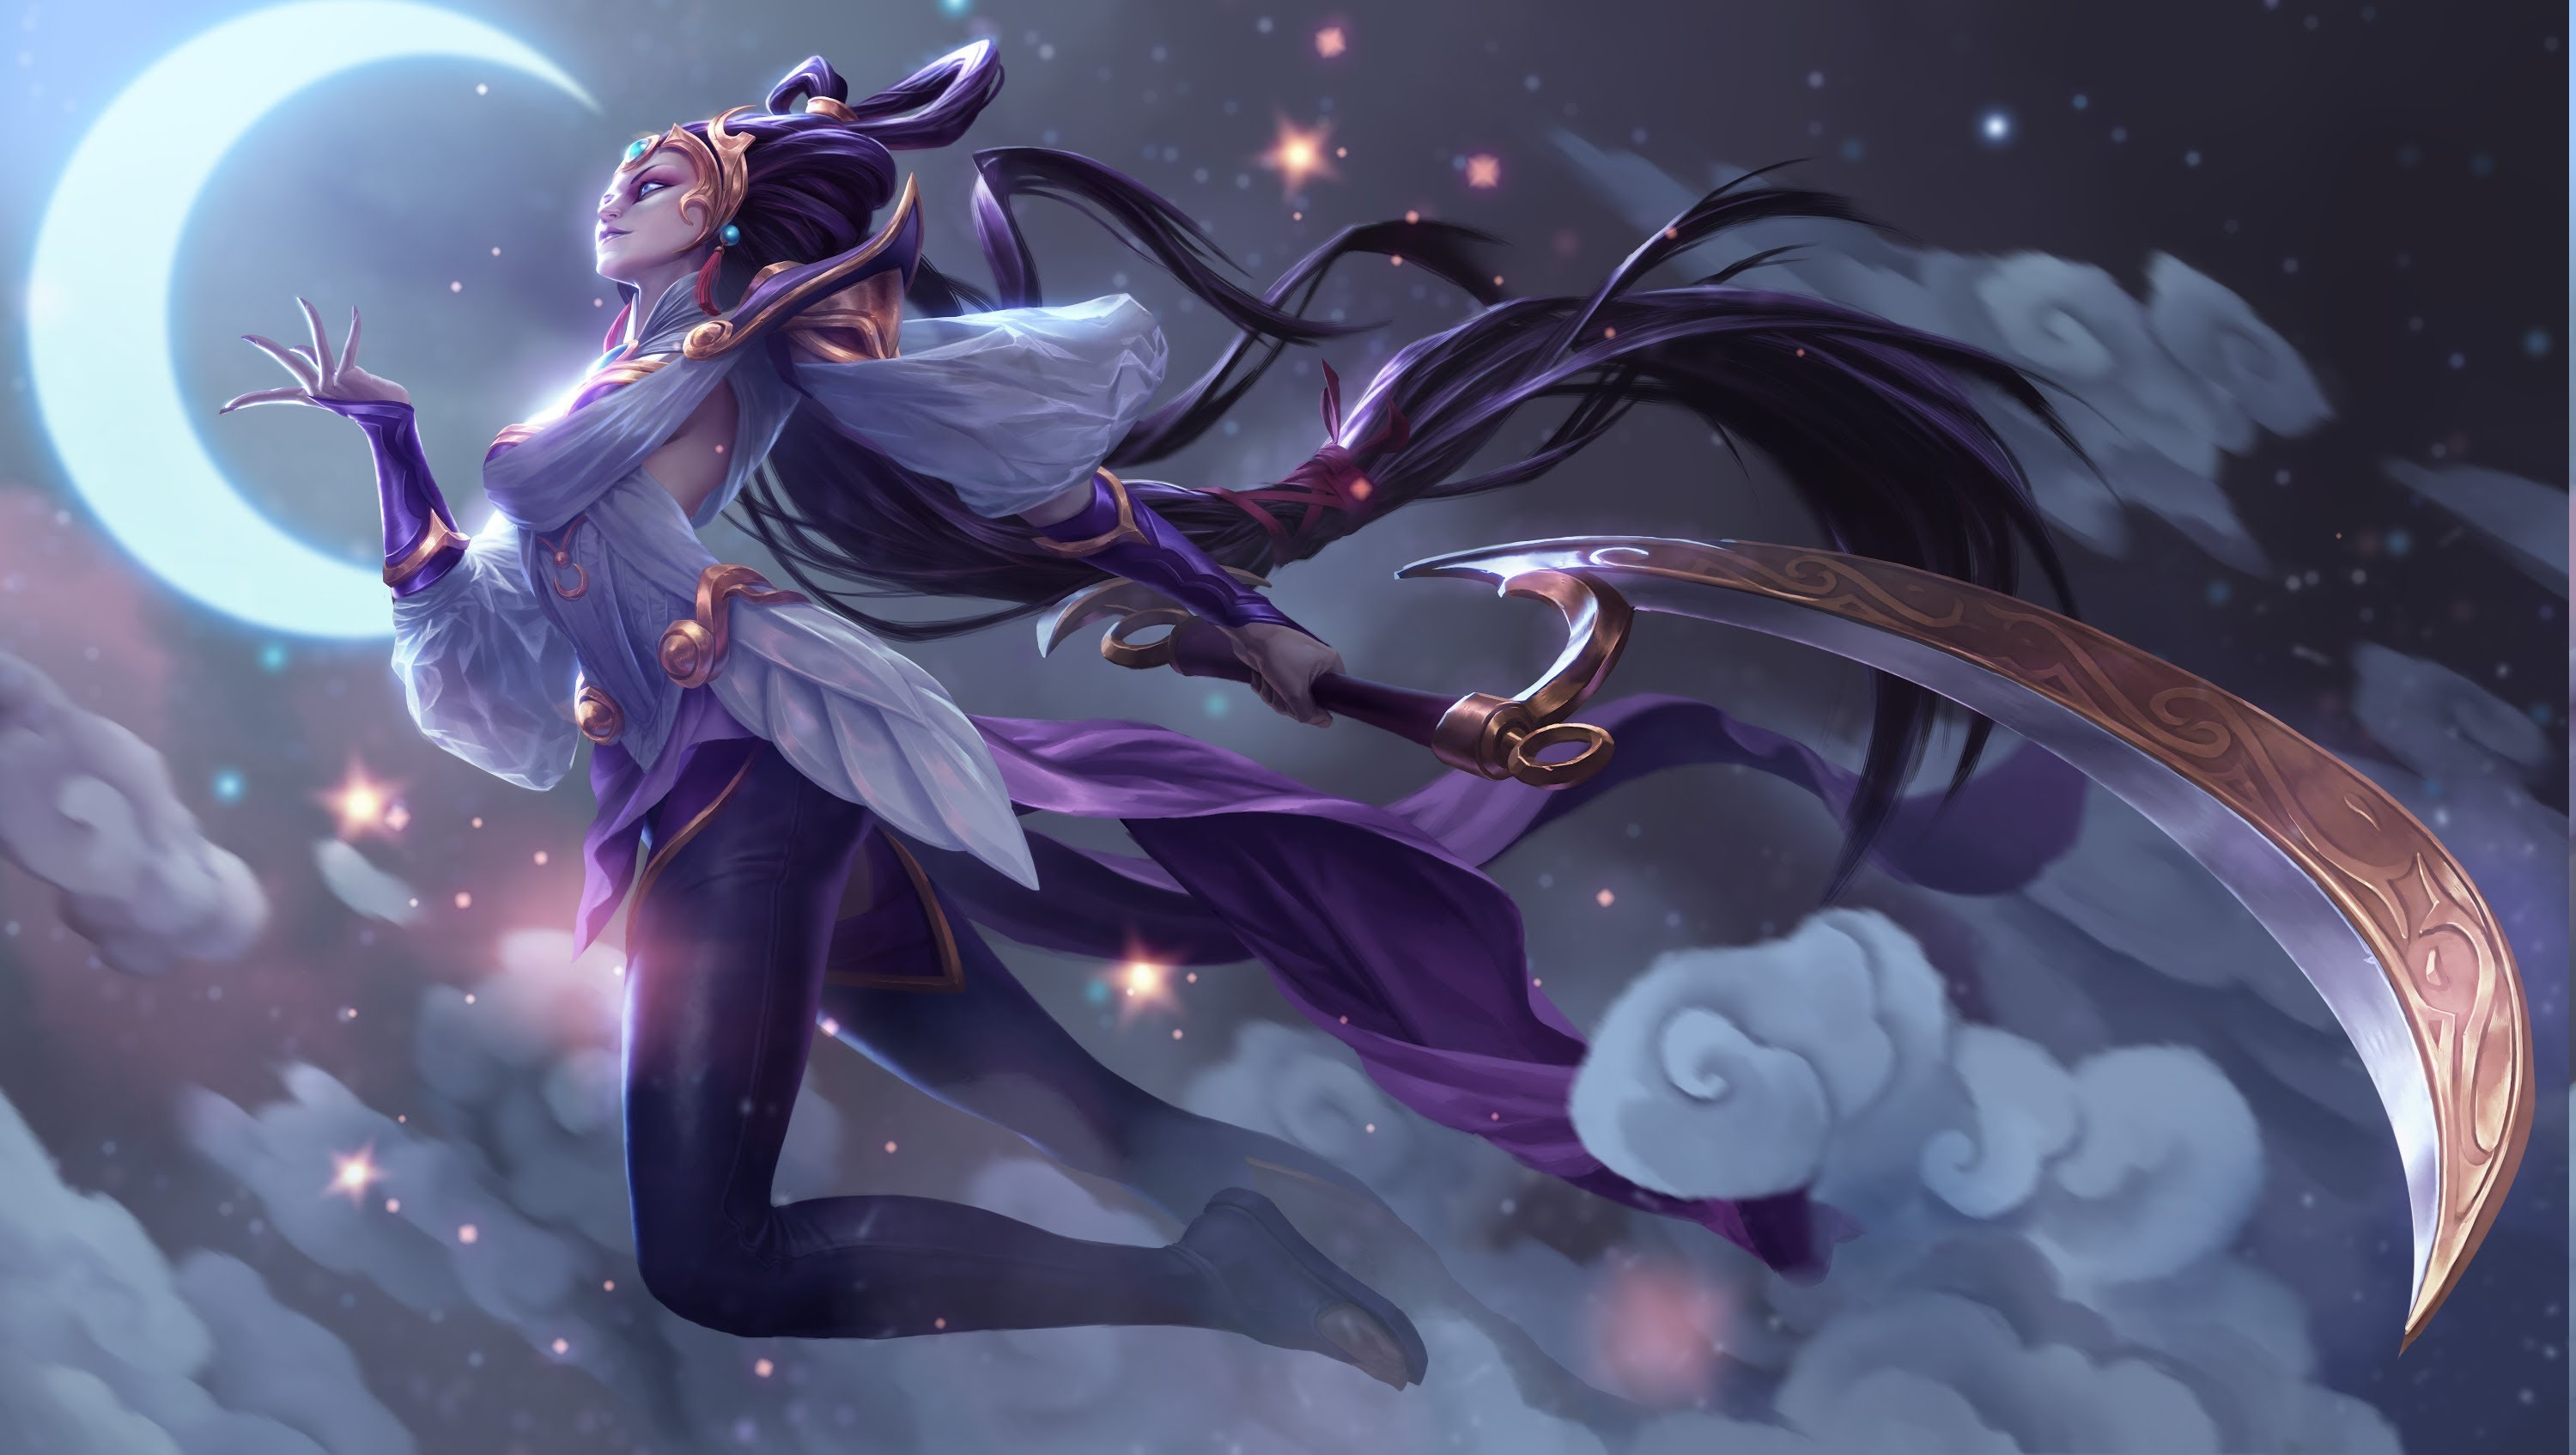 League Of Legends Video Games Digital Art Diana Wallpapers HD 3000x1694